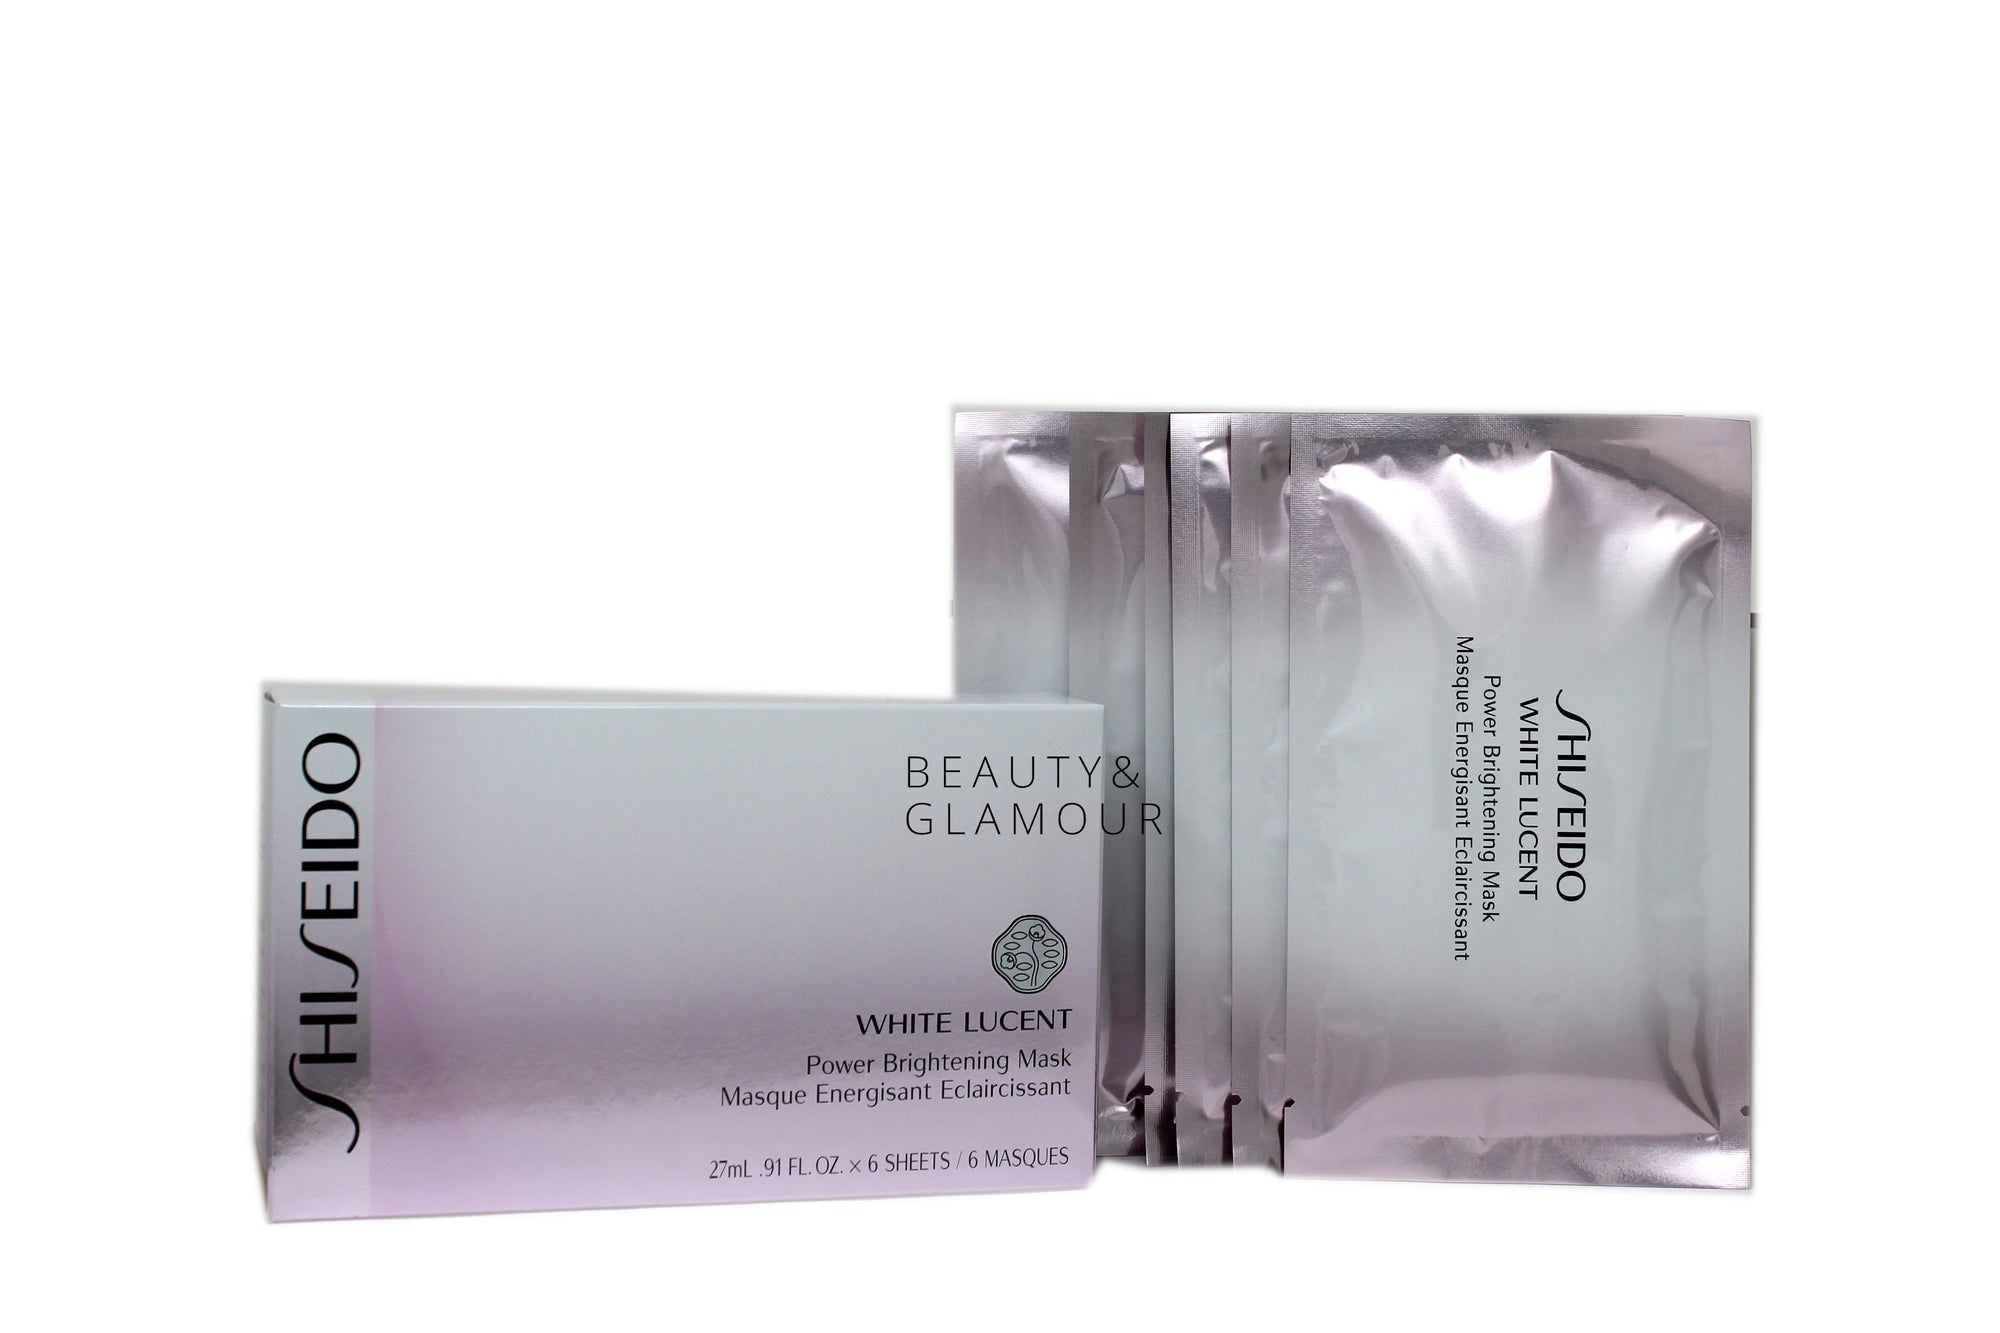 SHISEIDO WHITE LUCENT POWER BRIGHTENING MASK  AVAILABLE SIZE:6 SHEETS EACH 27 ML/0.91 FL.OZ.  CONCERNS: TARGET SPOTS AND DISCOLORATION.  BENEFITS:  SOOTHES DAMAGED SKIN WITH MOISTURE. MASK FITS AROUND FACIAL CONTOURS, SEALING IN THE MASK ESSENCE FOR AN OPTIMAL BRIGHTENING EFFECT.